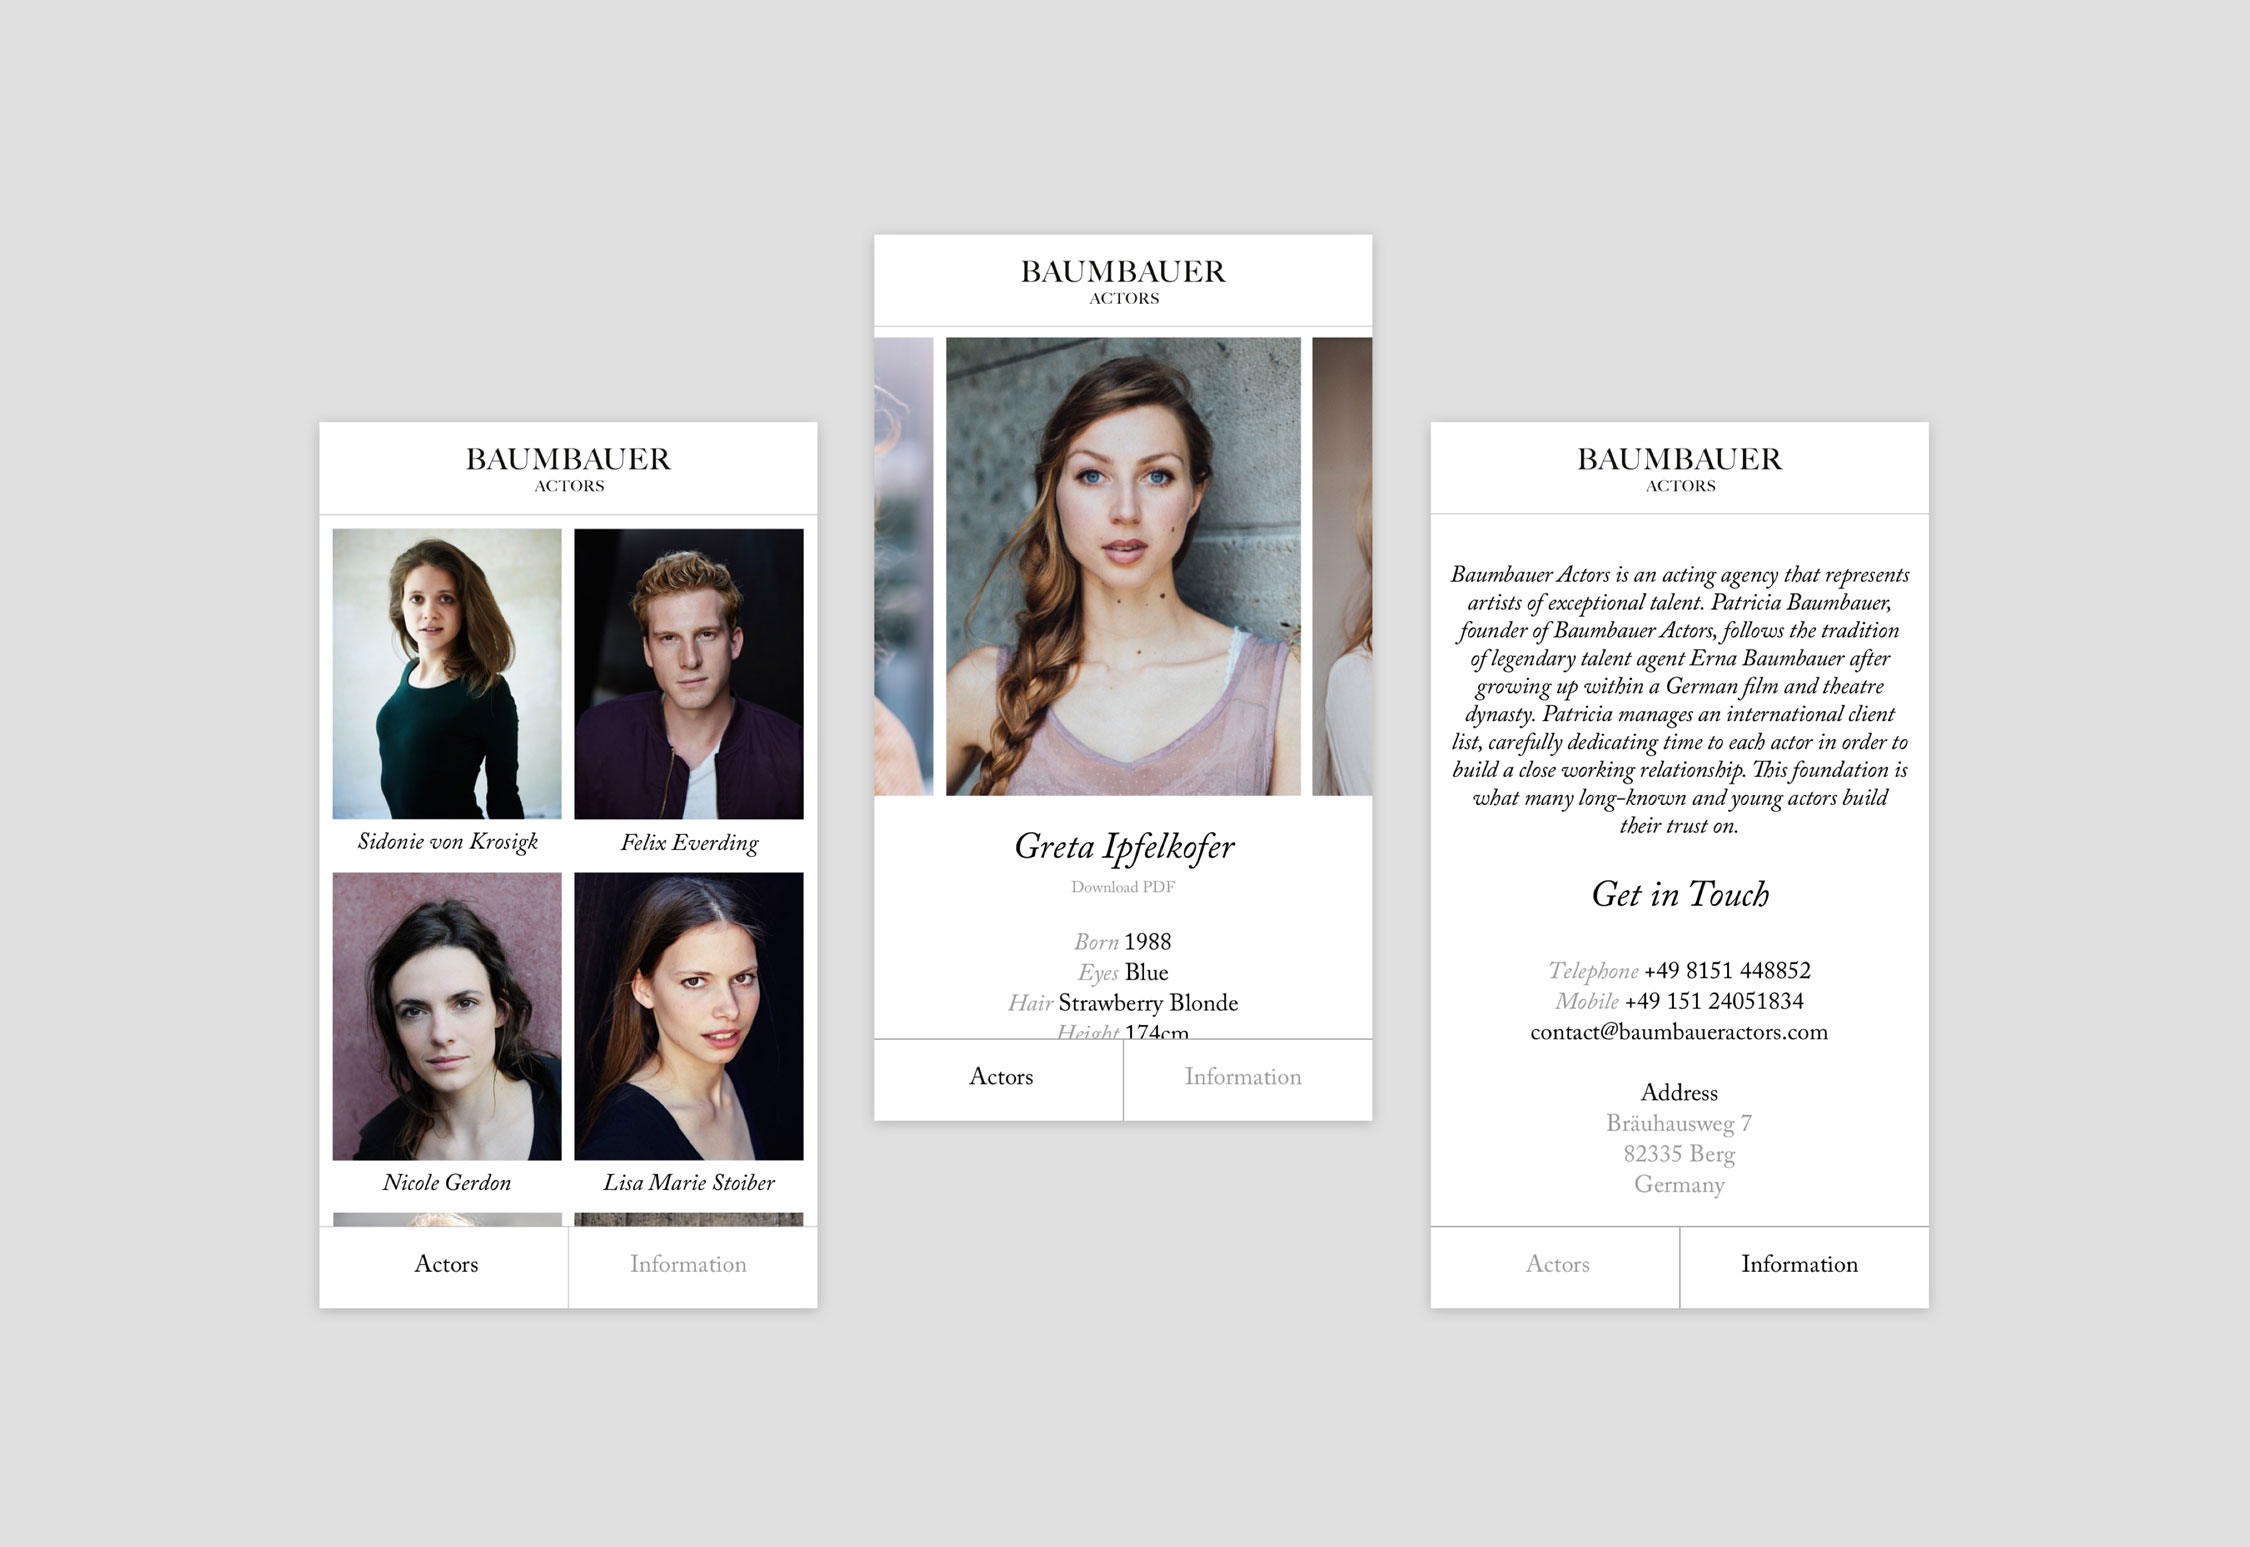 Baumbauer Actors website designed by She Was Only